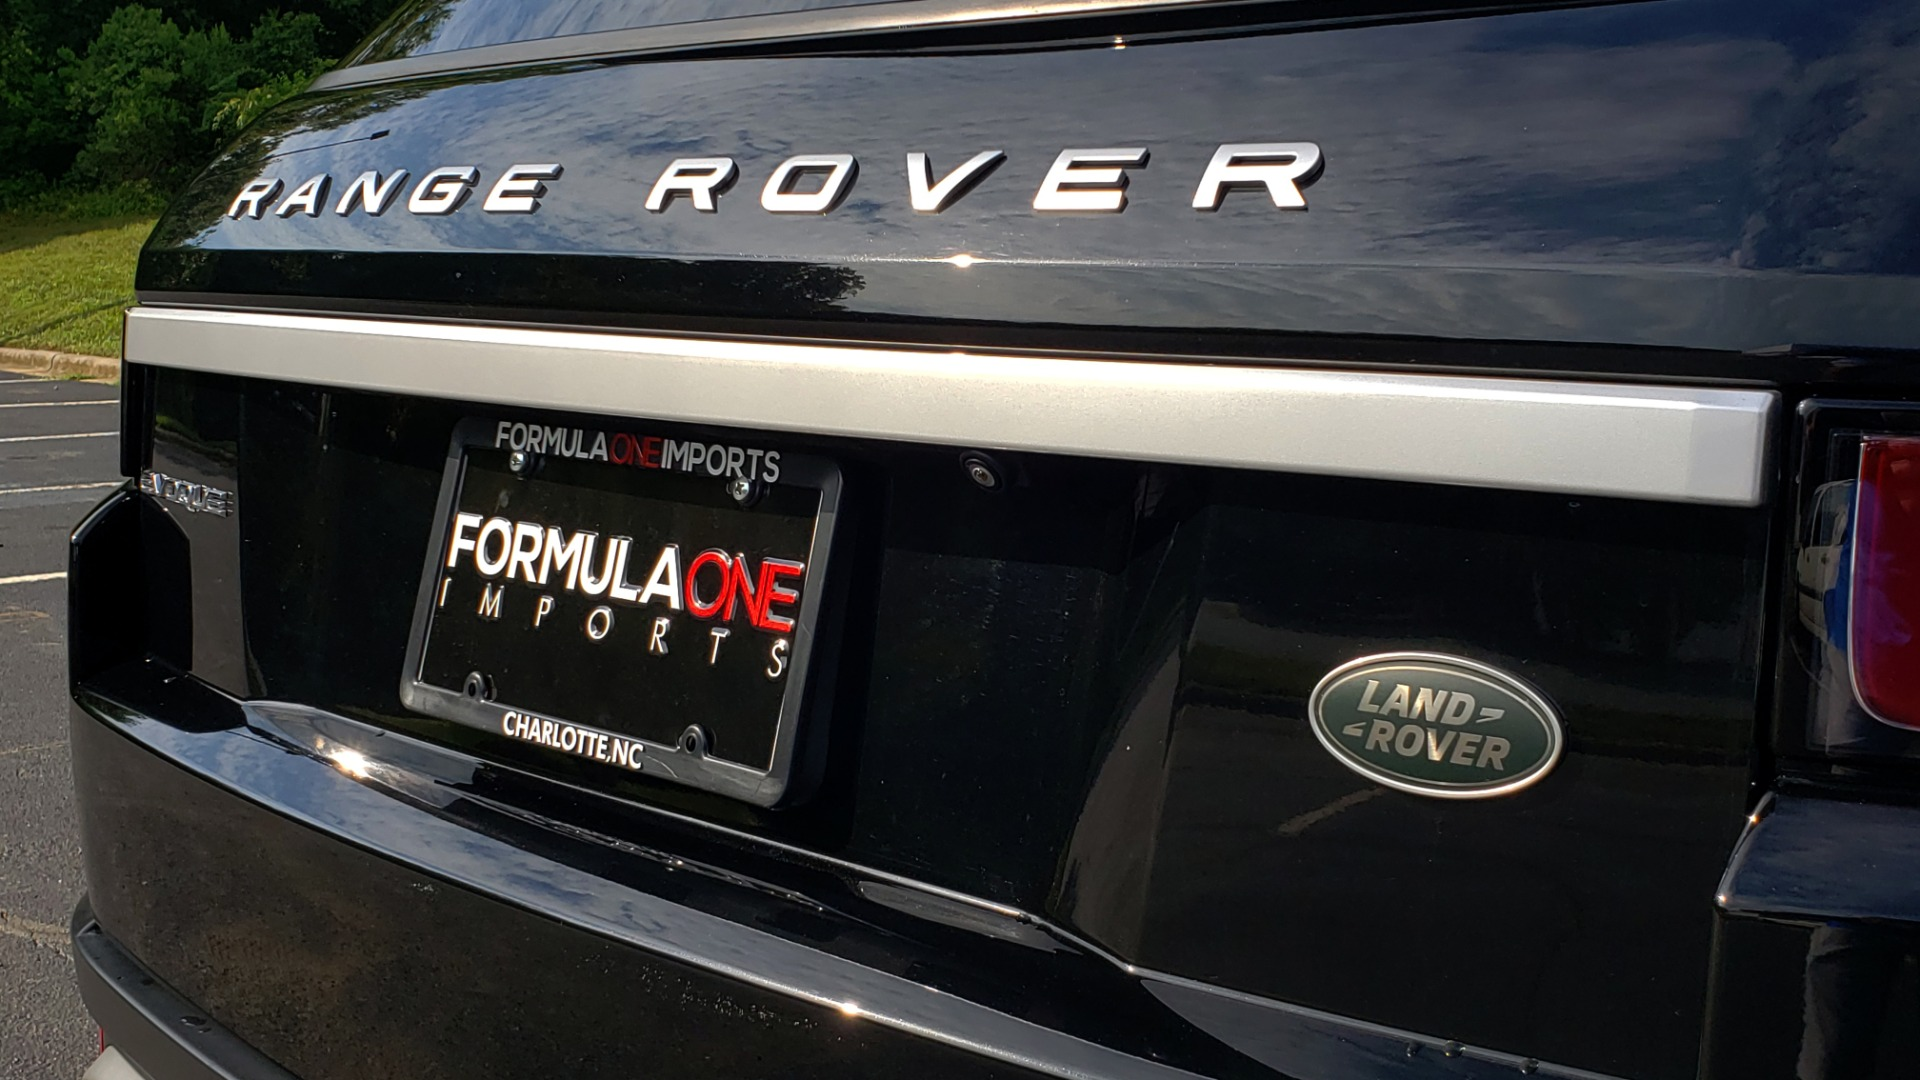 Used 2016 Land Rover RANGE ROVER EVOQUE HSE / AWD / NAV / MERIDIAN / PANO-ROOF / REARVIEW for sale Sold at Formula Imports in Charlotte NC 28227 30